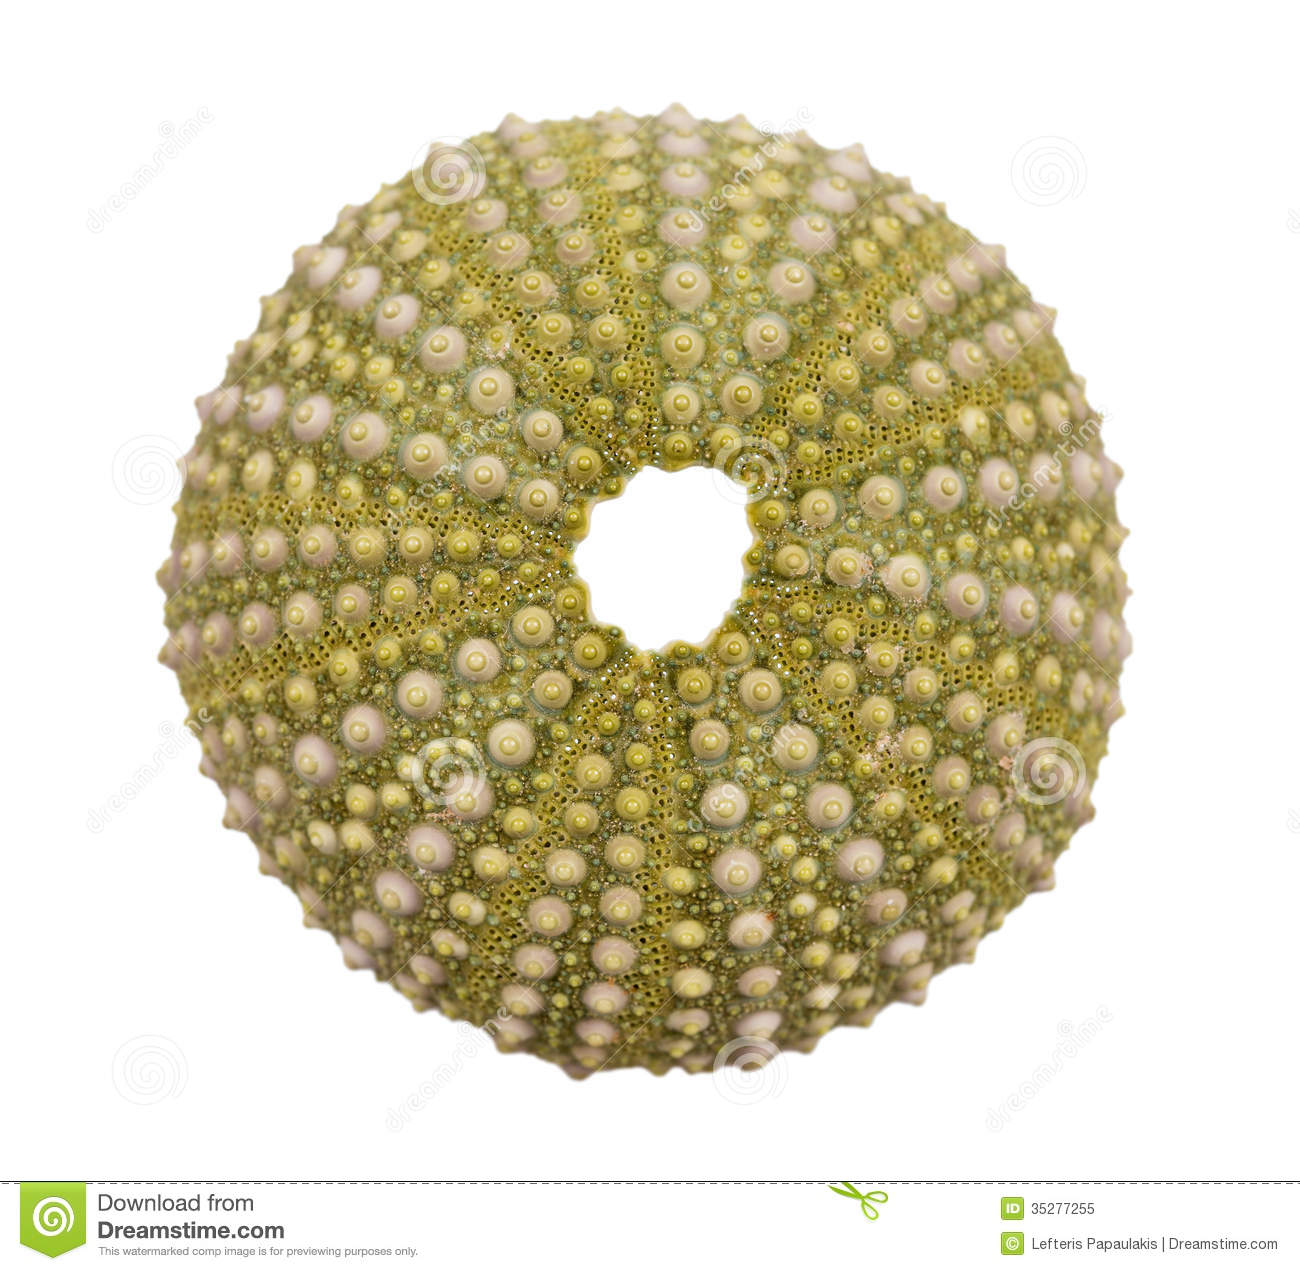 White sea urchin shell - photo#6